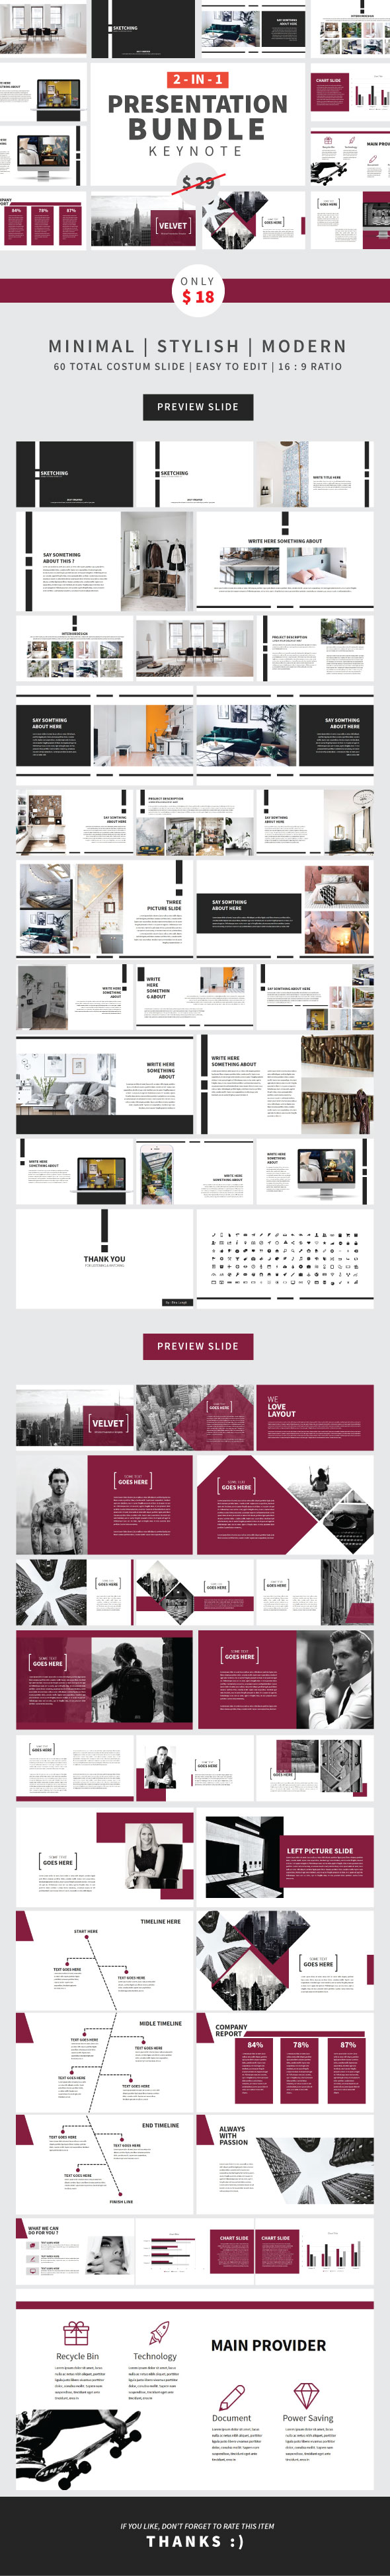 Bundle Key 2 in 1 - Creative Keynote Templates